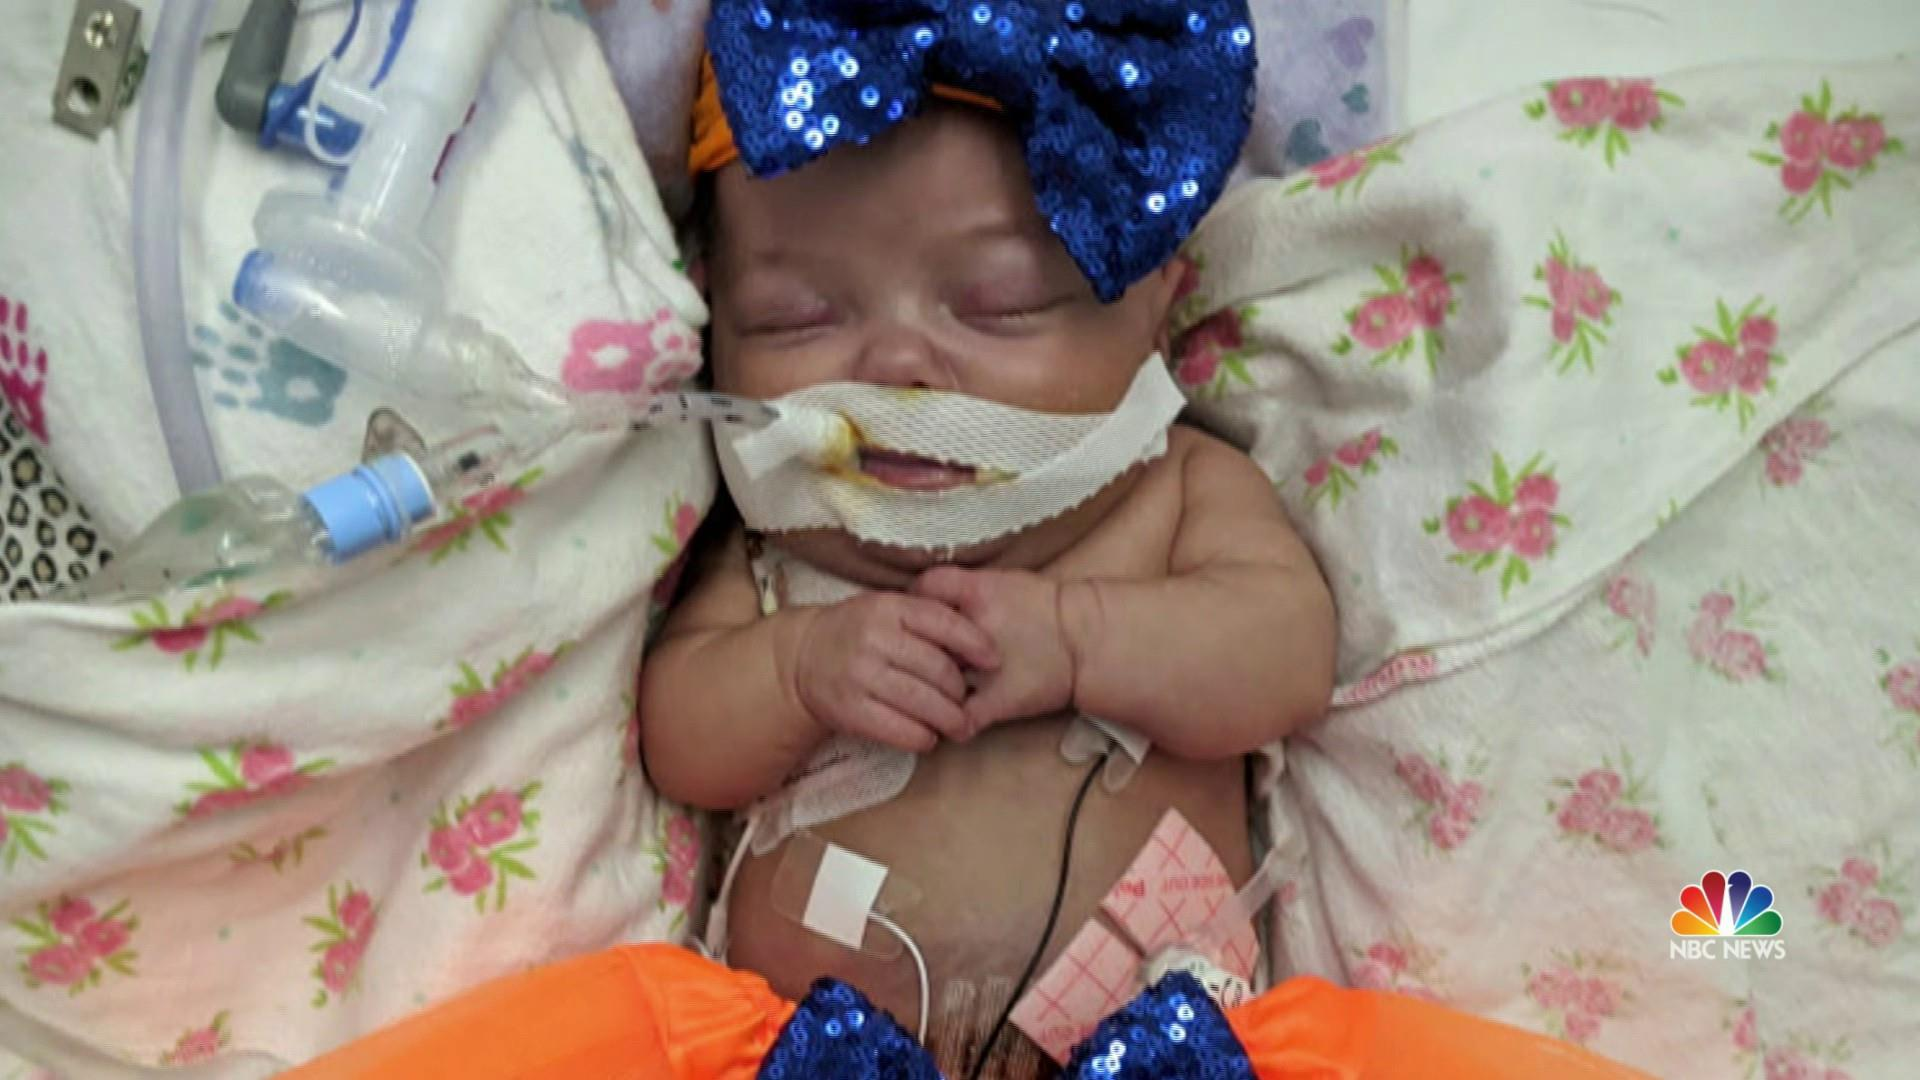 Miracle Premature Baby Born at 25 Weeks in a Car During a Snowstorm is Now Thriving